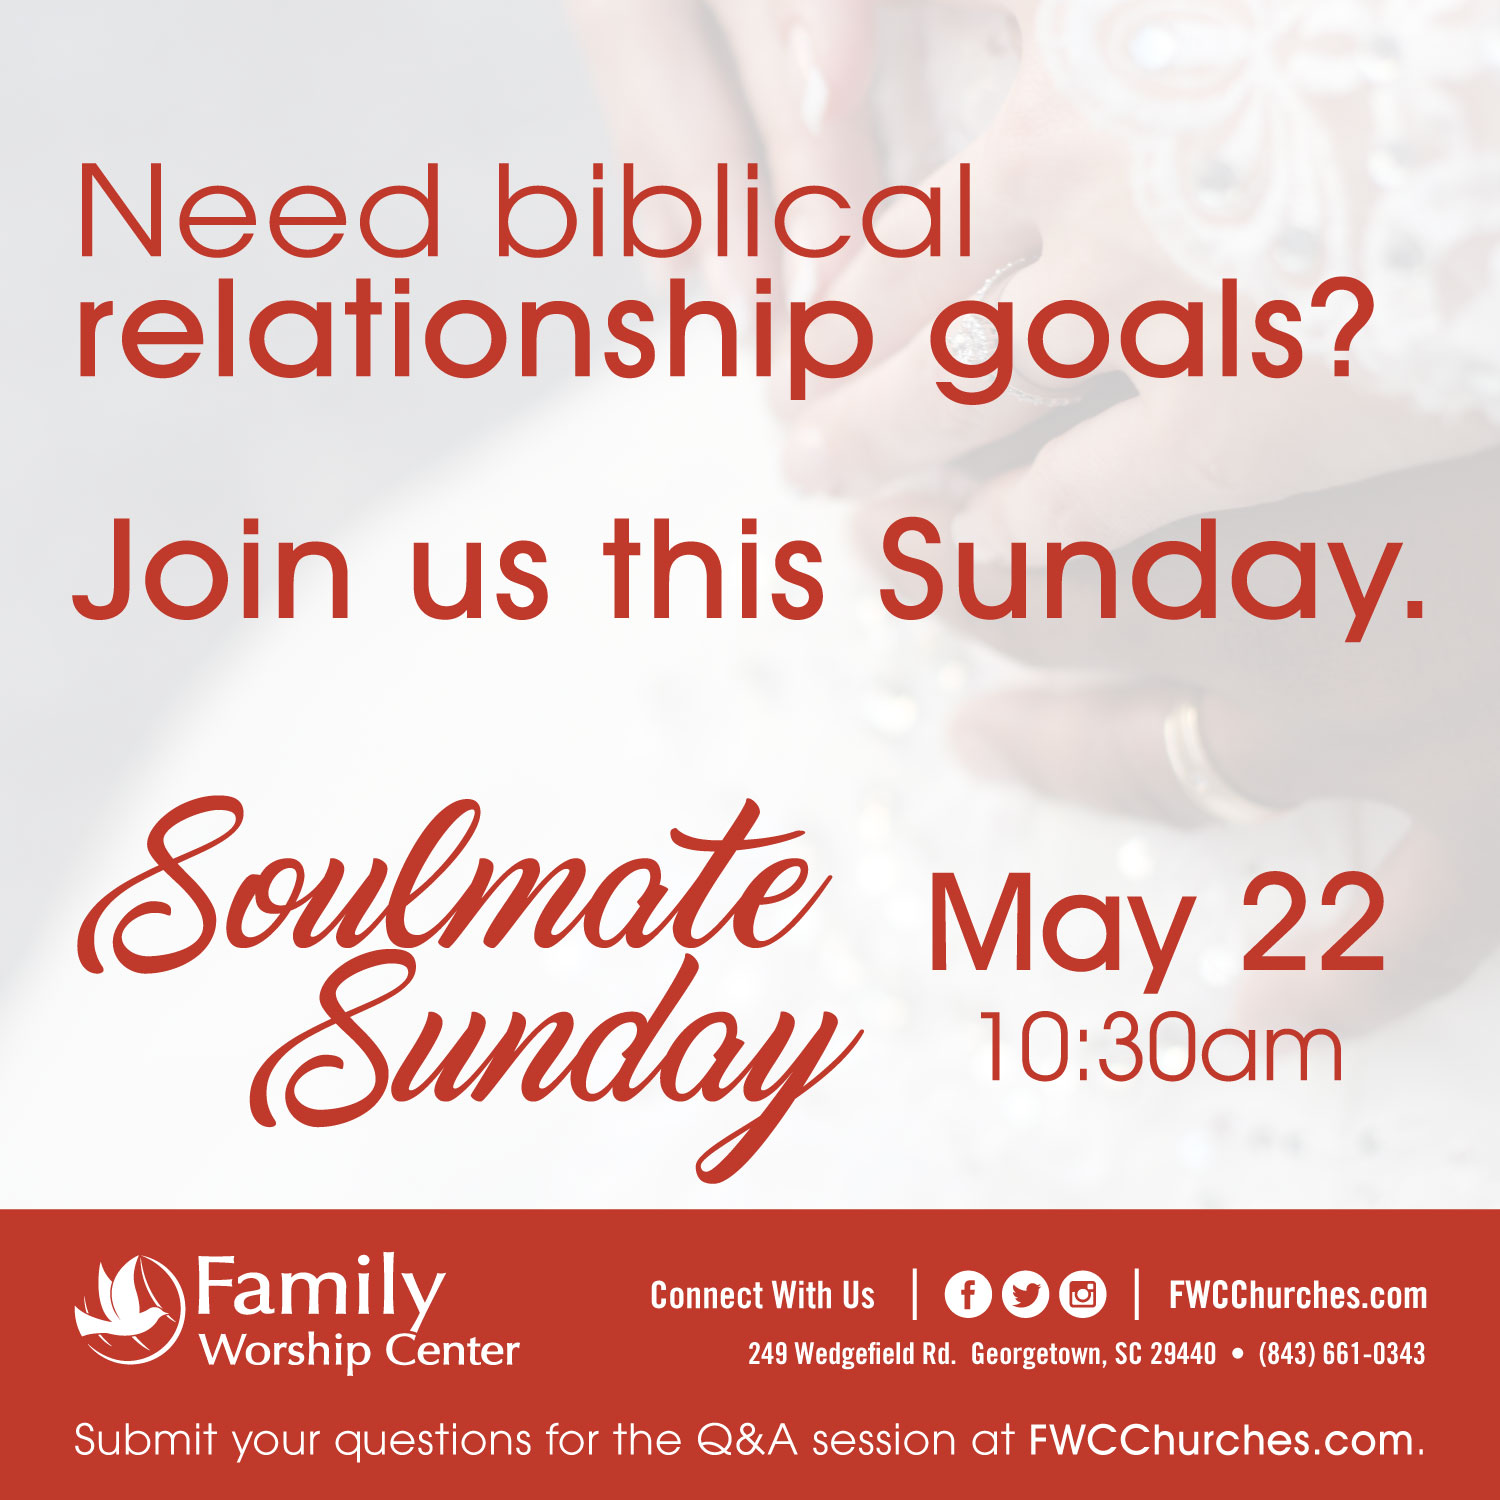 Soulmate Sunday 2016 - Social Square 1 - Family Worshpi Center Churches Georgetown